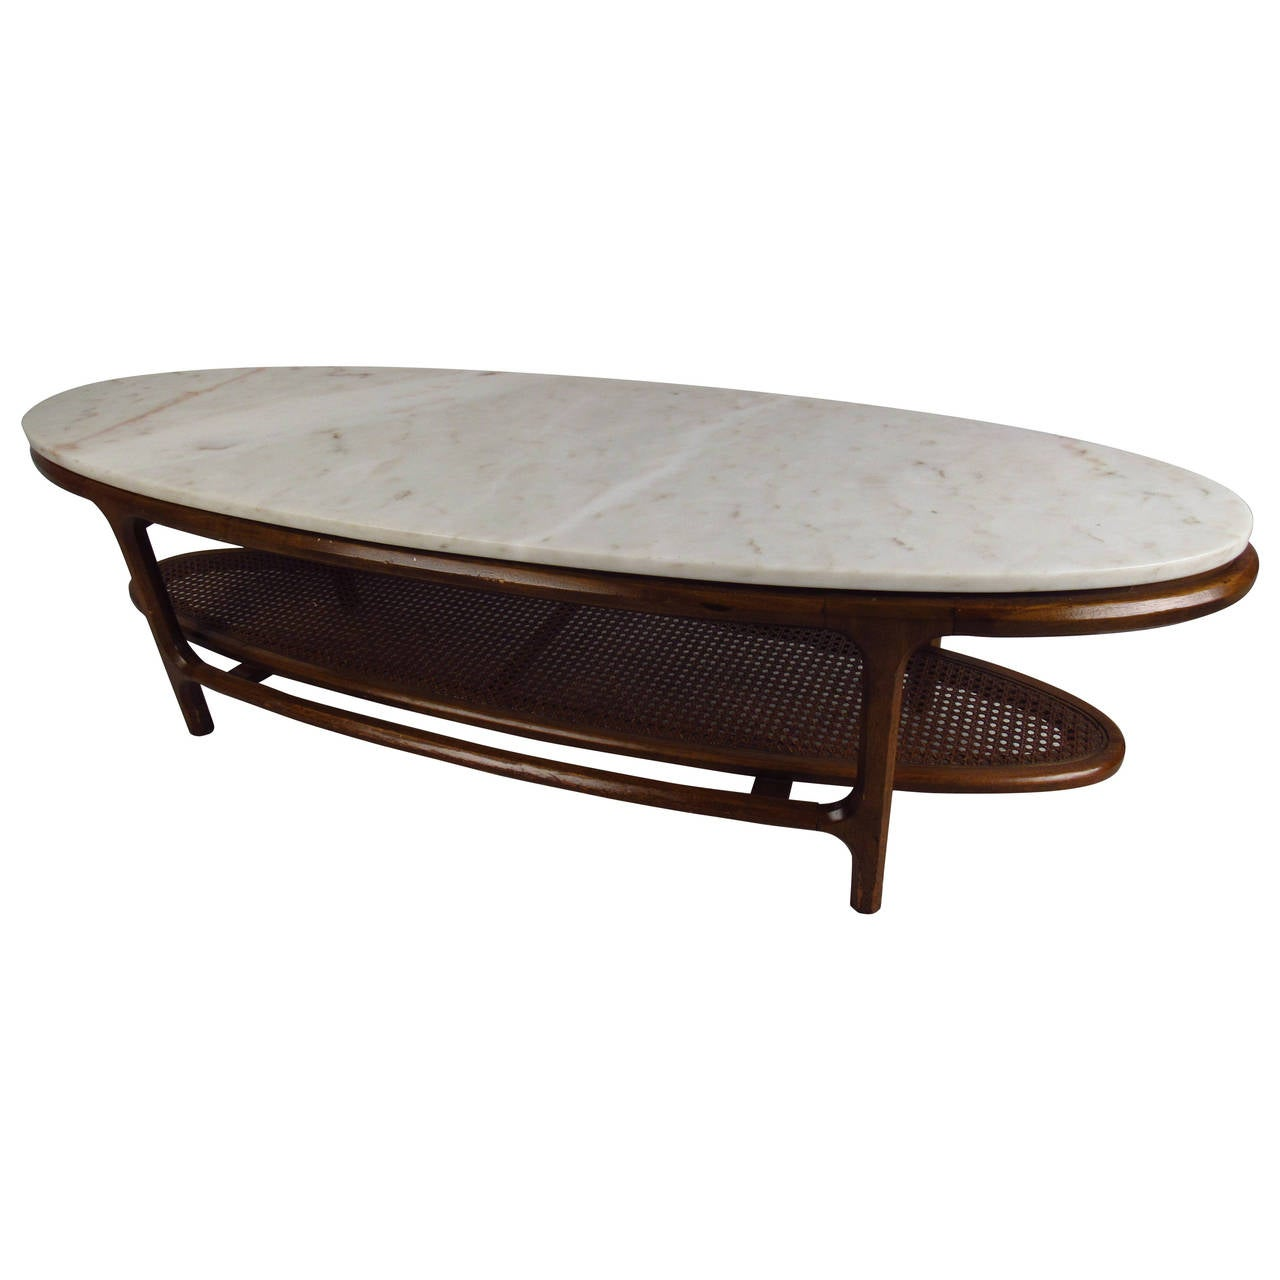 Mid century modern marble top coffee table with cane shelf for sale at 1stdibs Stone top coffee table